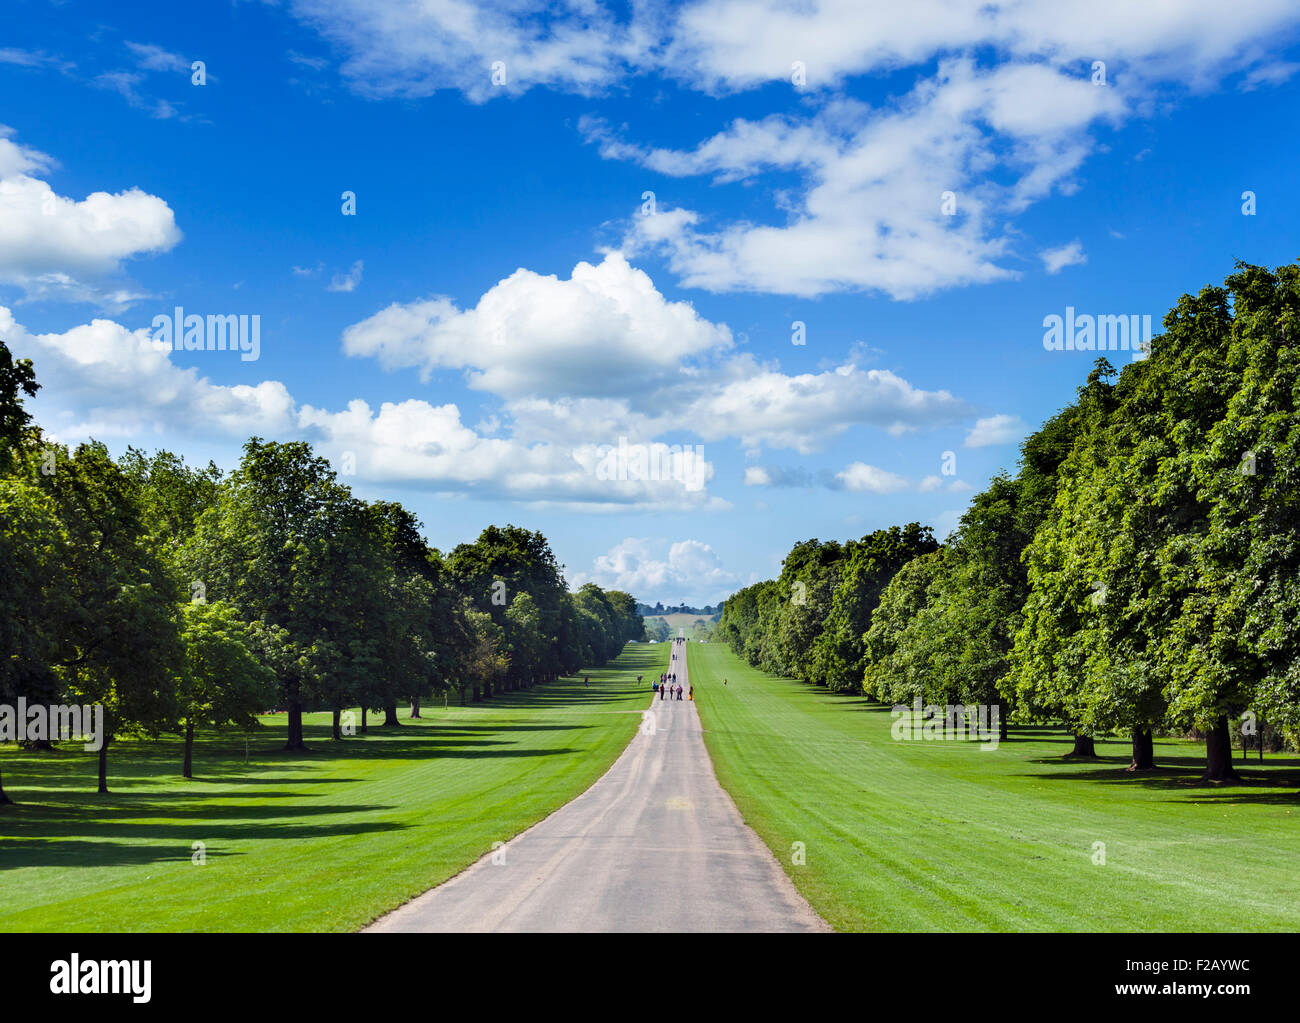 The Long Walk looking south, Windsor Great Park, Berkshire, England, UK - Stock Image